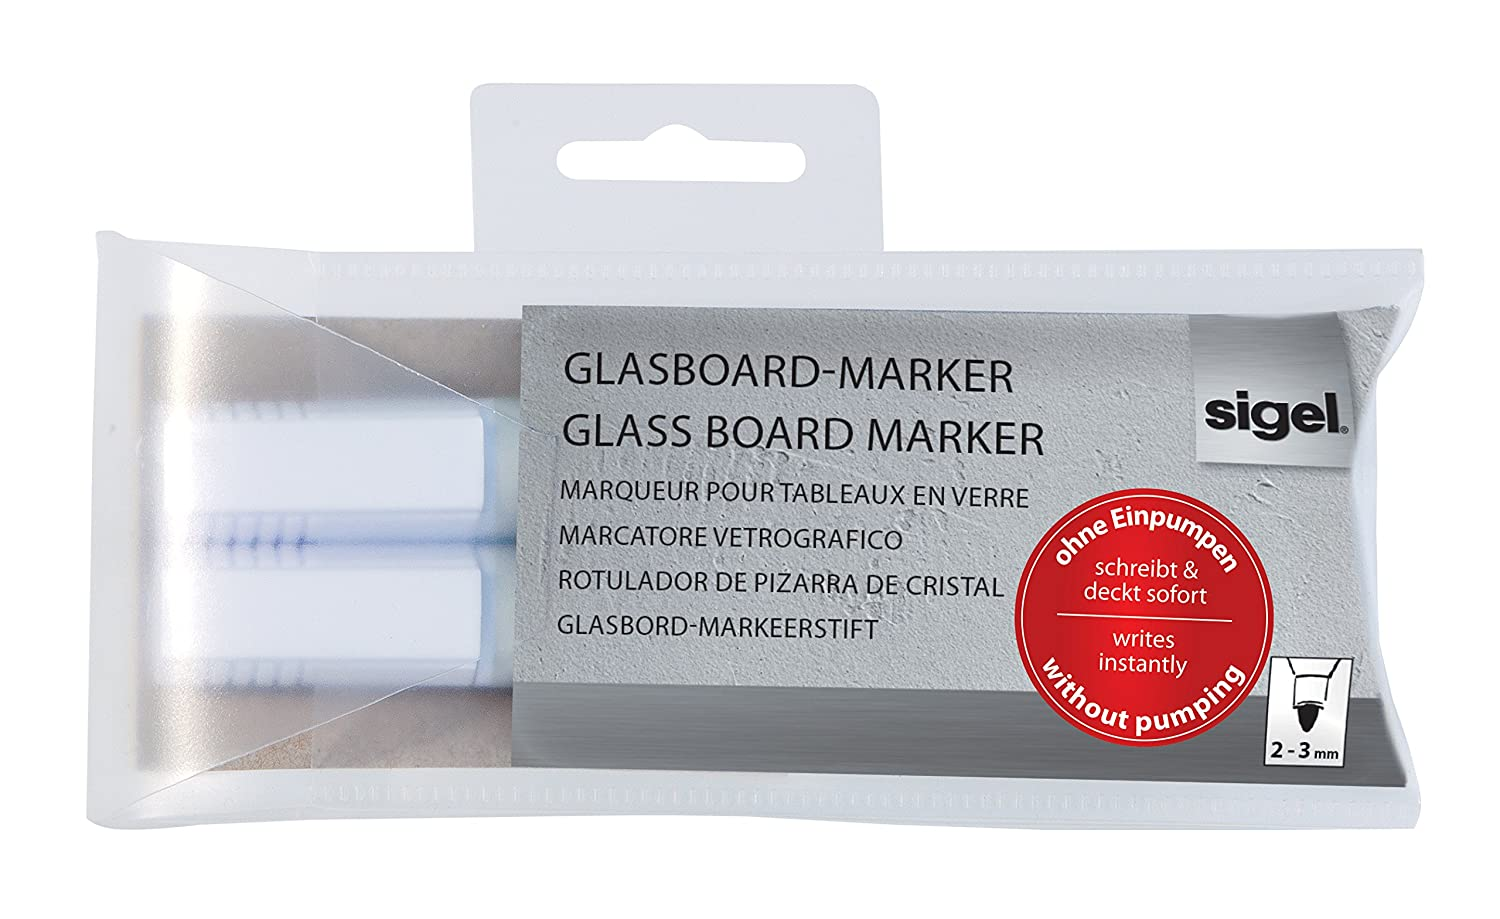 Amazon.com : Sigel GL715 2-3 mm Round Nib Wipeable Glass ...